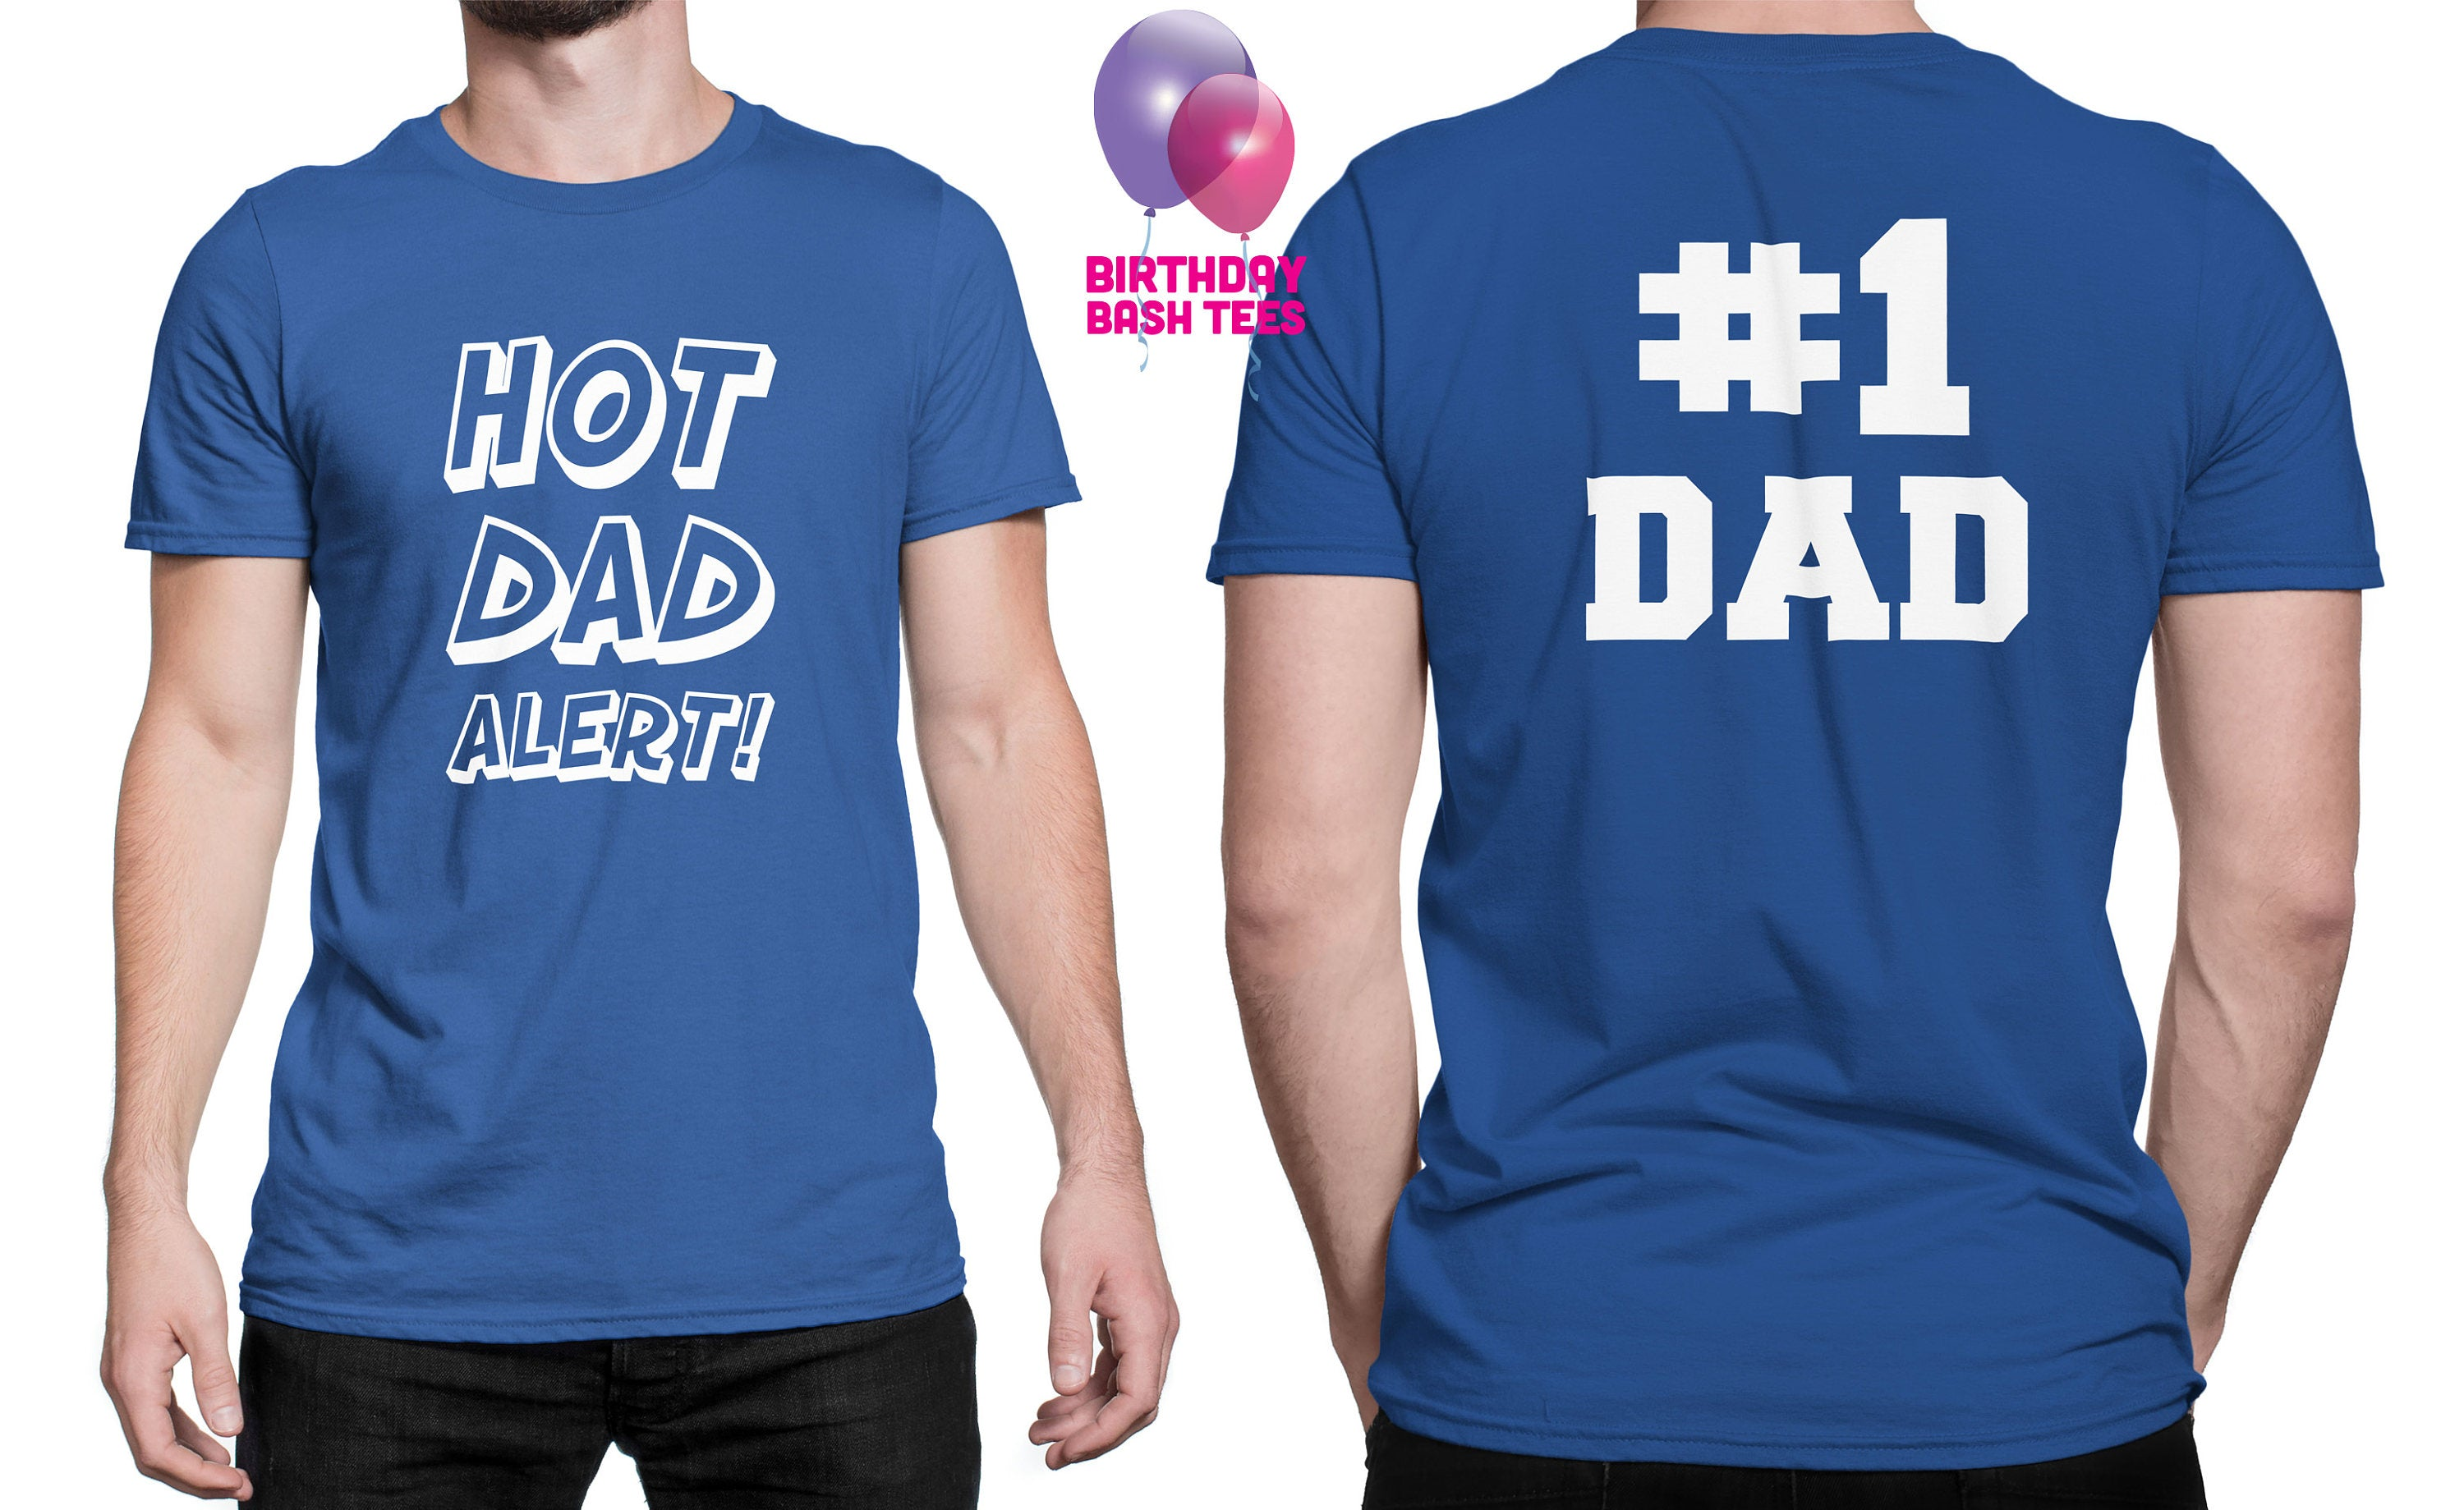 4498408ba Hot Dad Alert Father's Day Gift for Hot Dad Cool Father's Day Gift for  Trendy Dad Hipster Dad Gift from the Kids for Hot Dad Bod Funny Gift